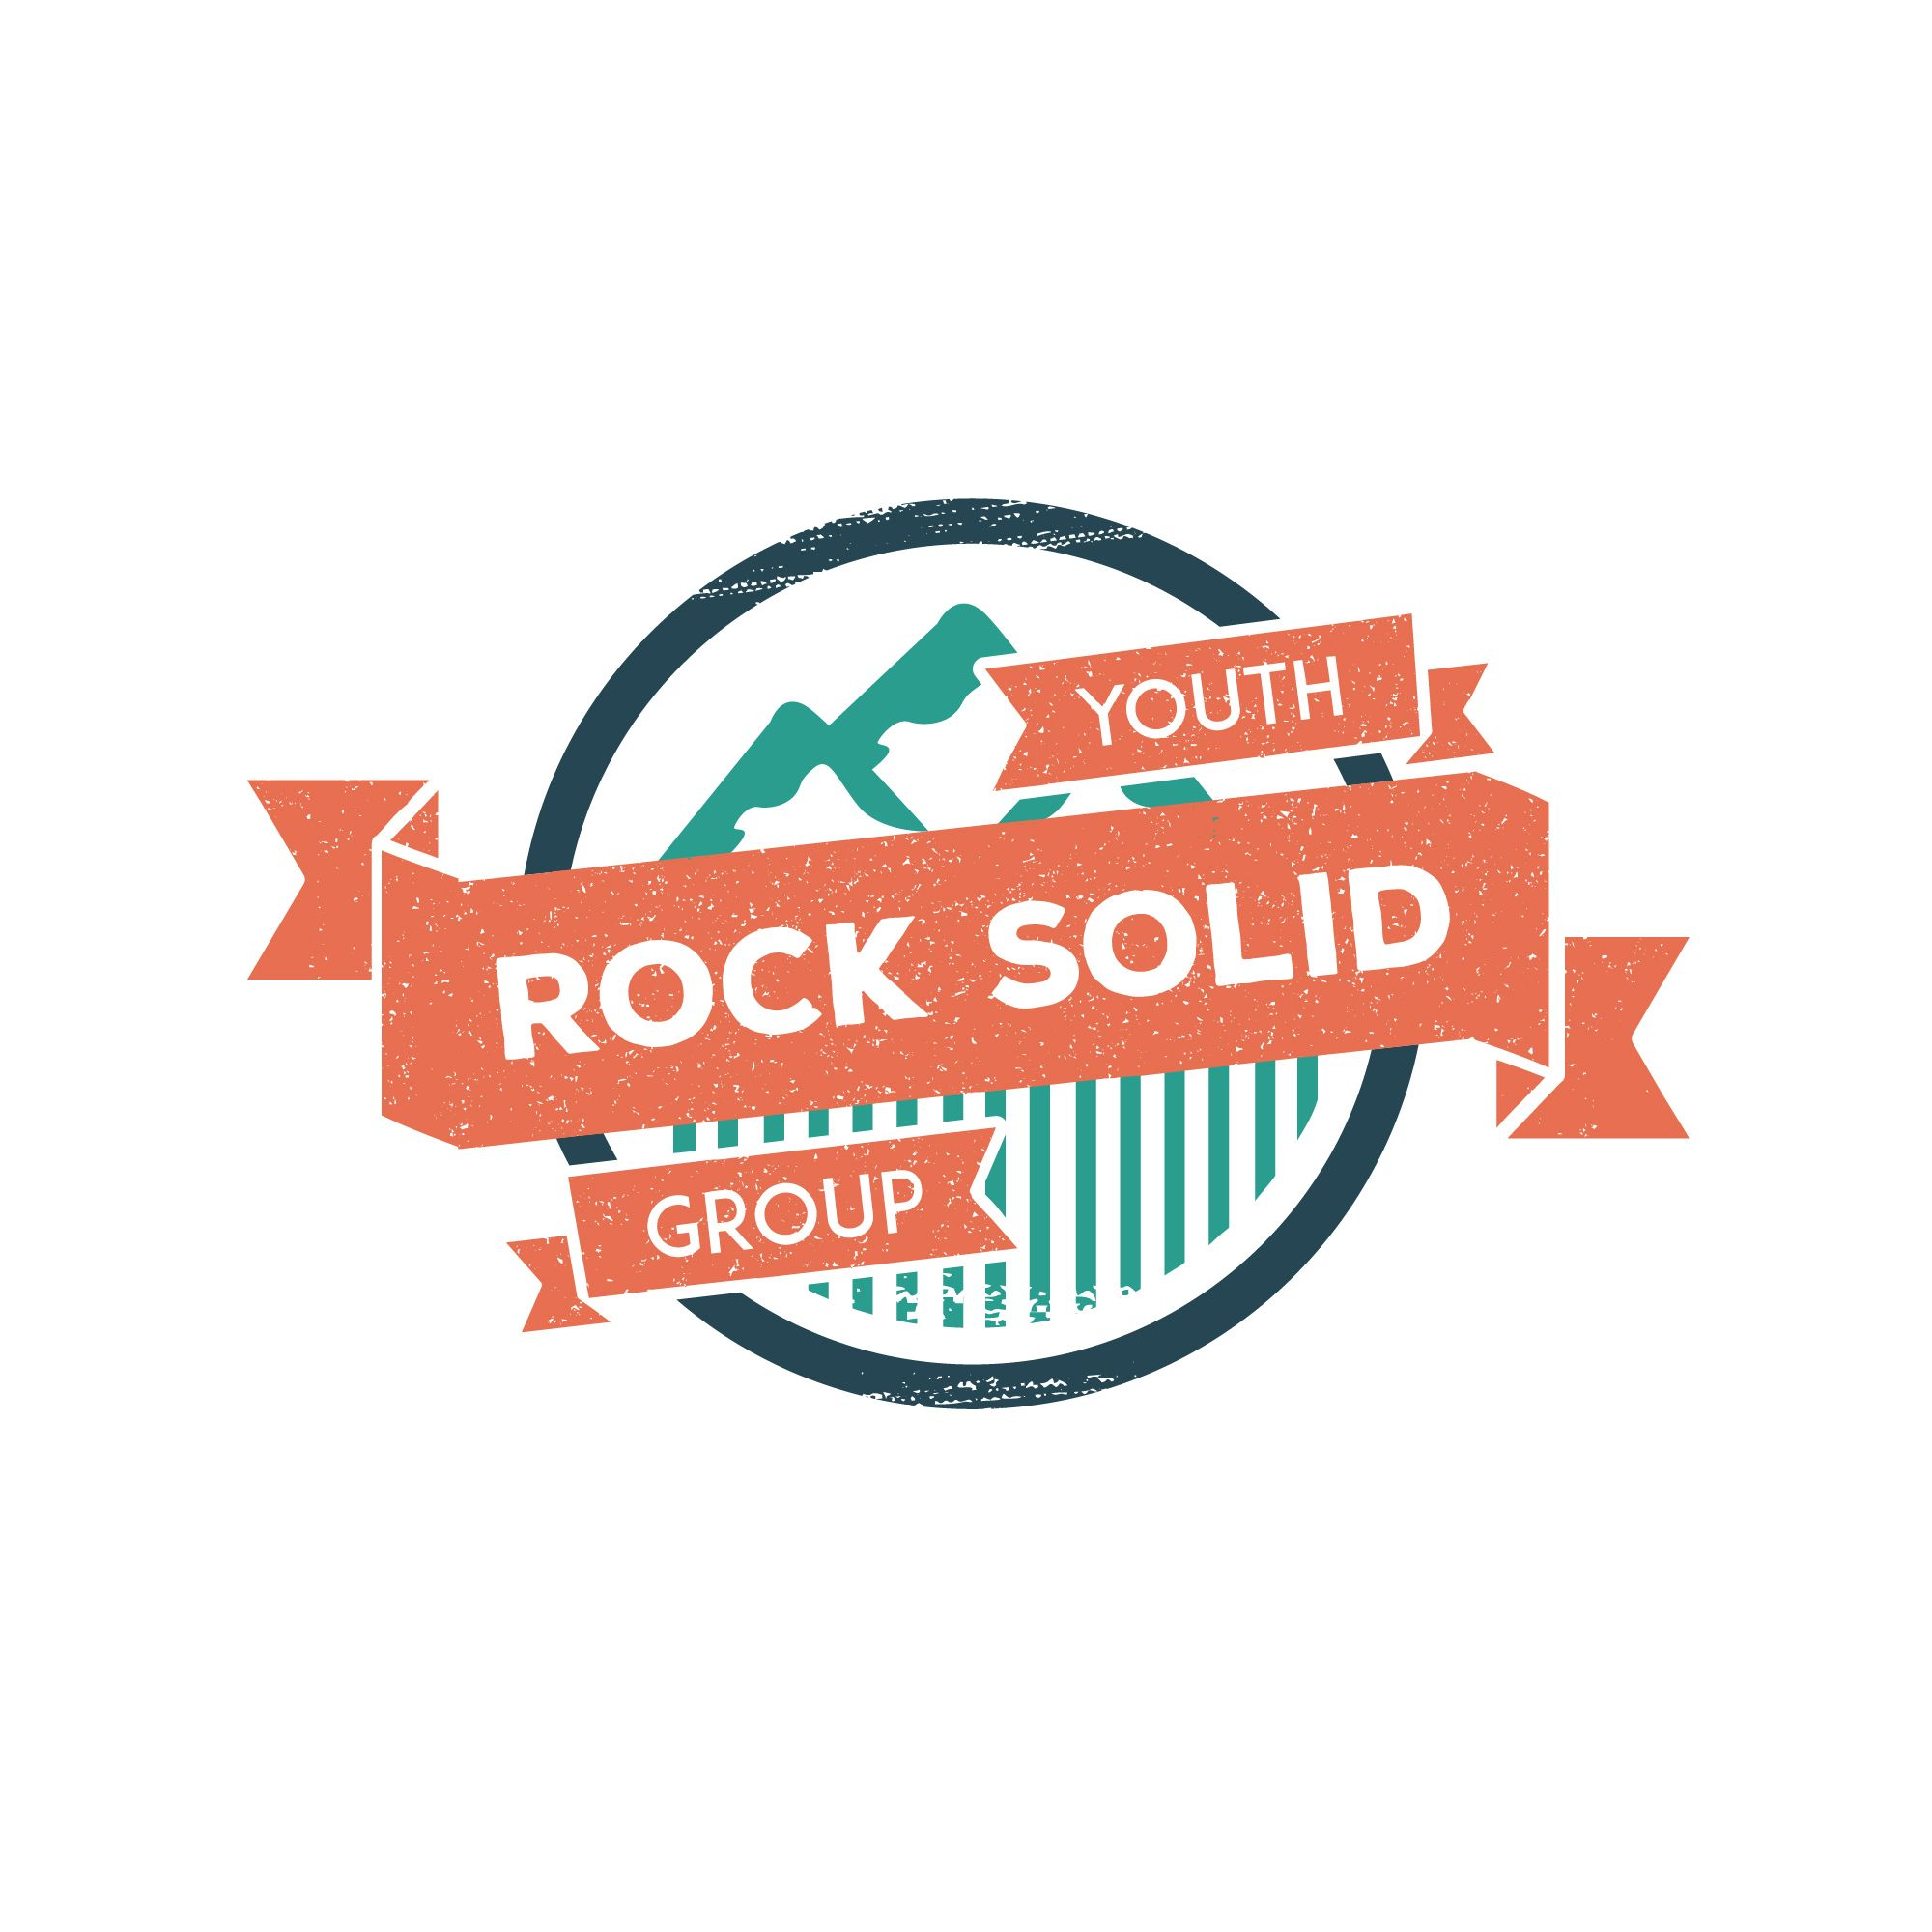 rock solid youth group youth group logos youth group logo ideas rh pinterest co uk youth group logos youth group logo design